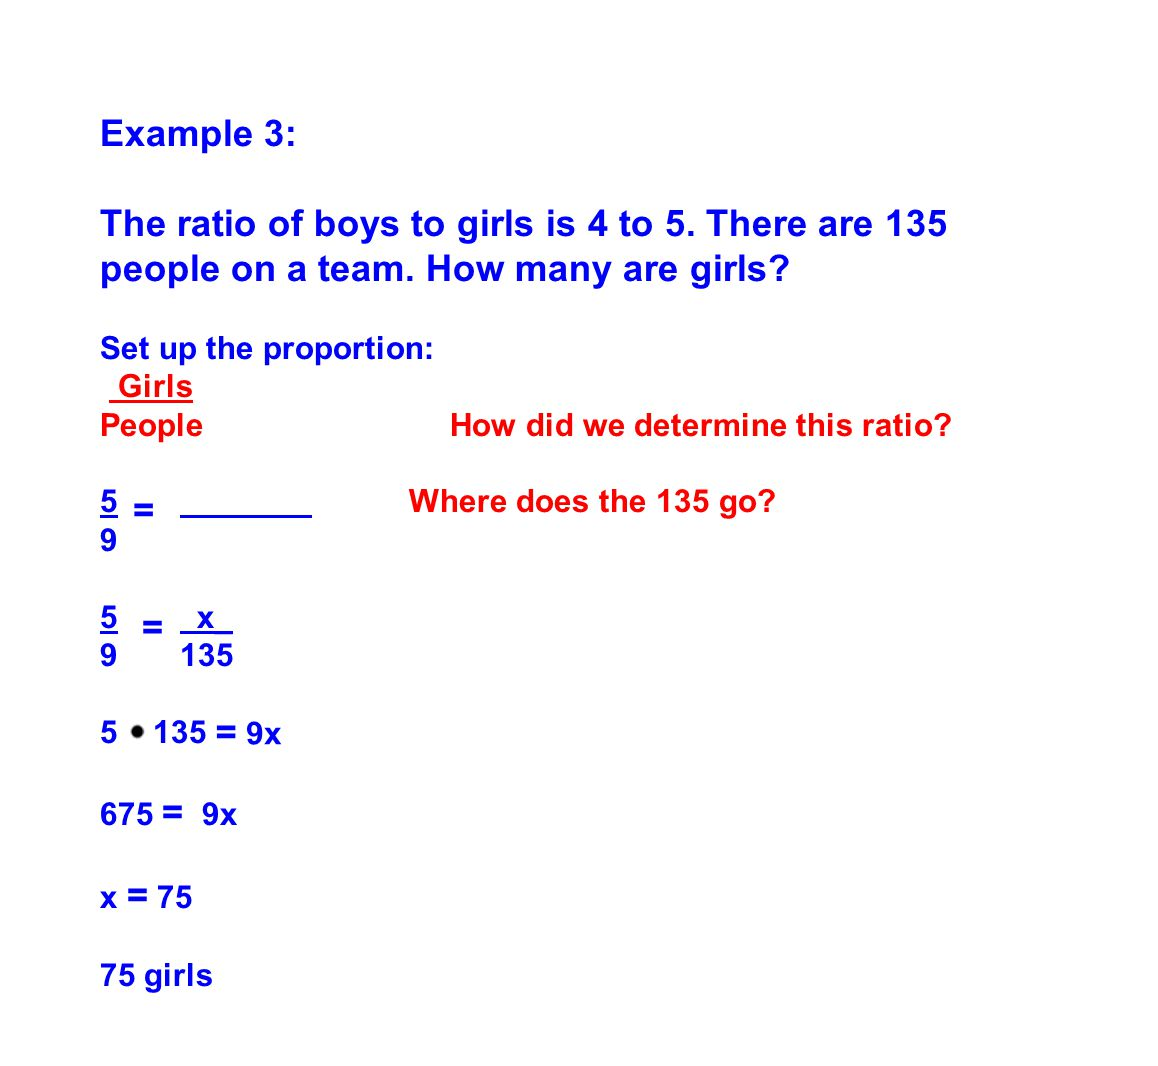 Example 3: The ratio of boys to girls is 4 to 5. There are 135 people on a team. How many are girls